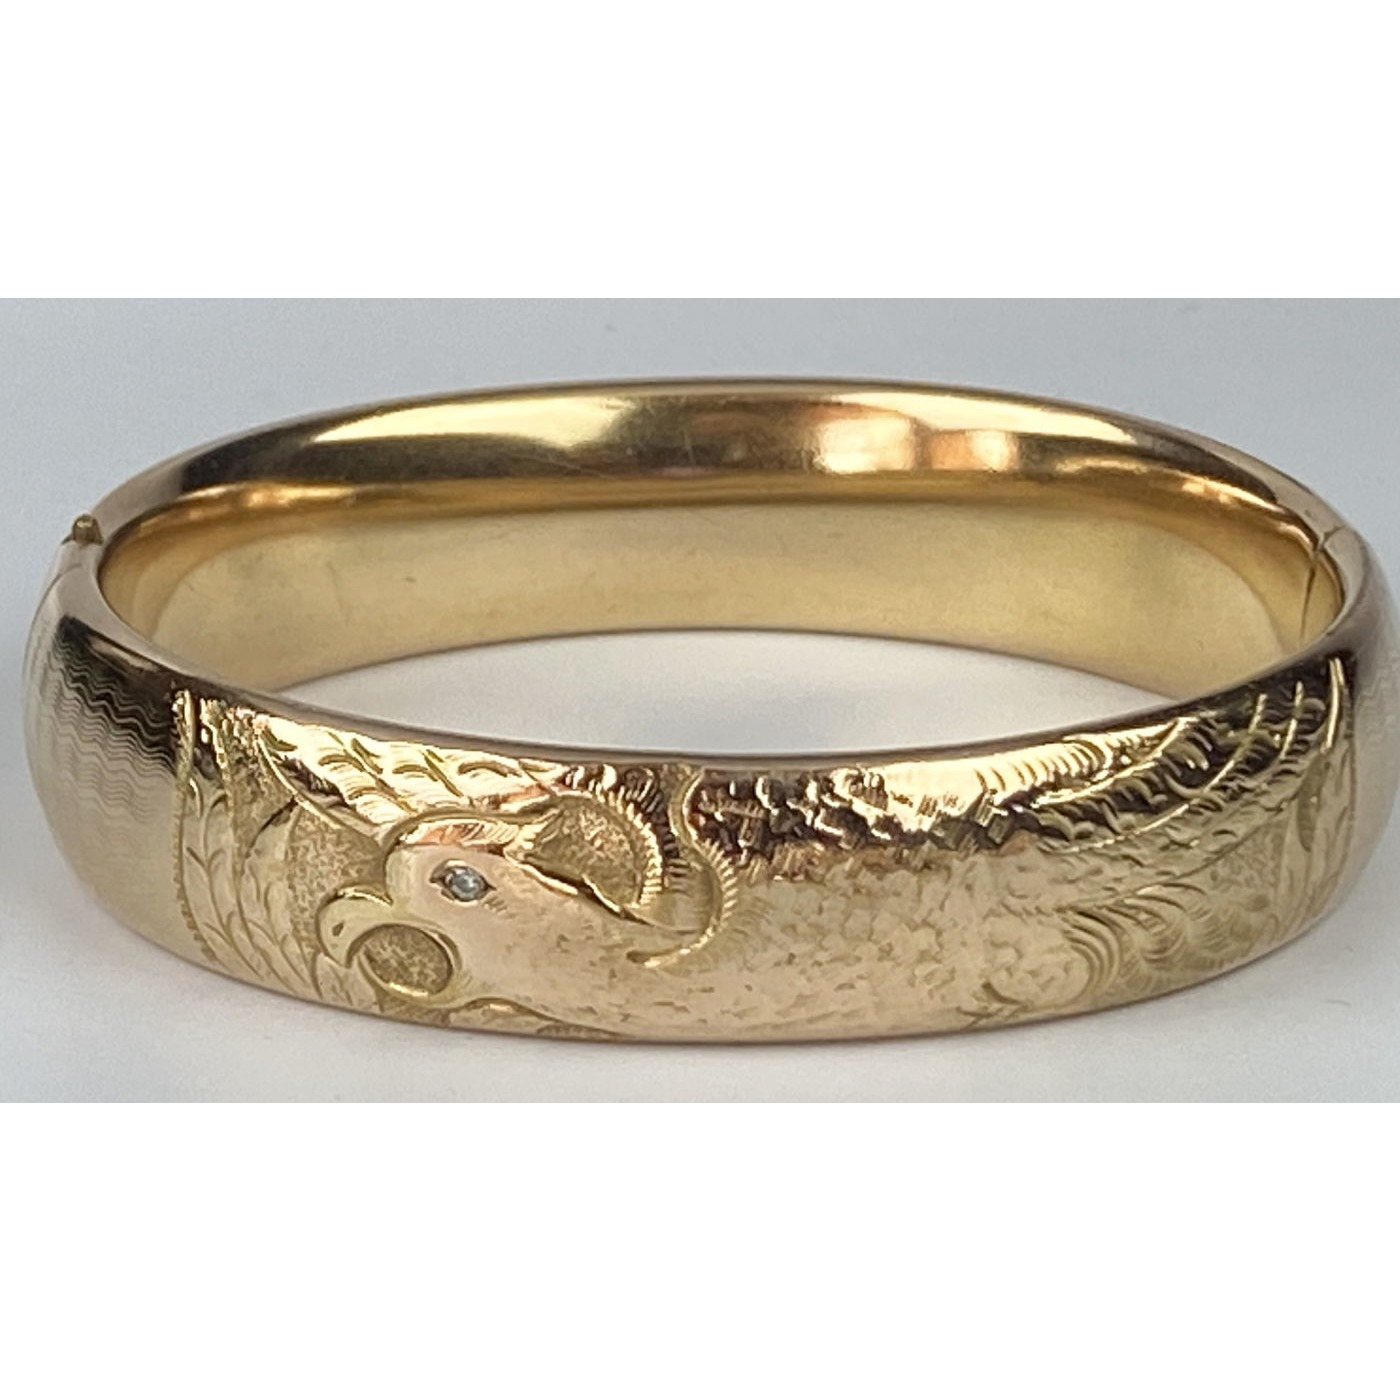 RARE Eagle Patriotic Engagement Bangle - Unlike Any Other